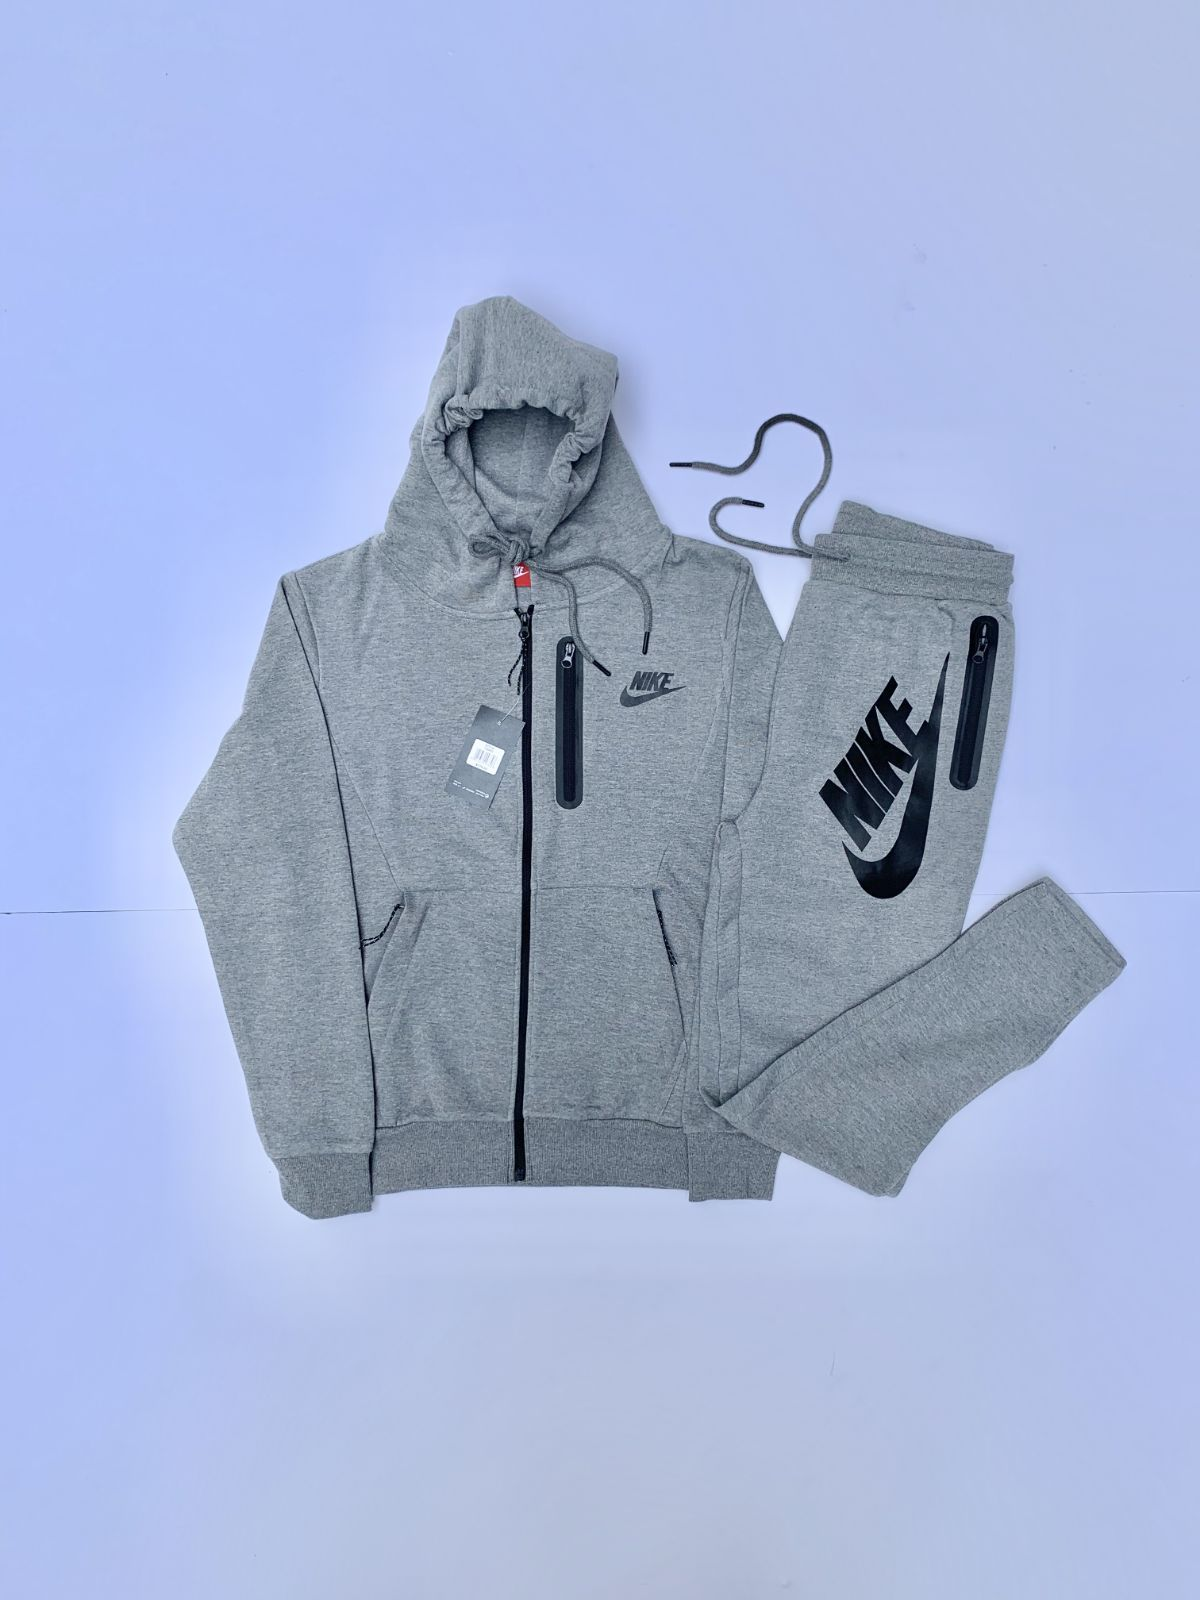 Nike Tech Sweatsuit Nike tech sweatsuit, Nike tech